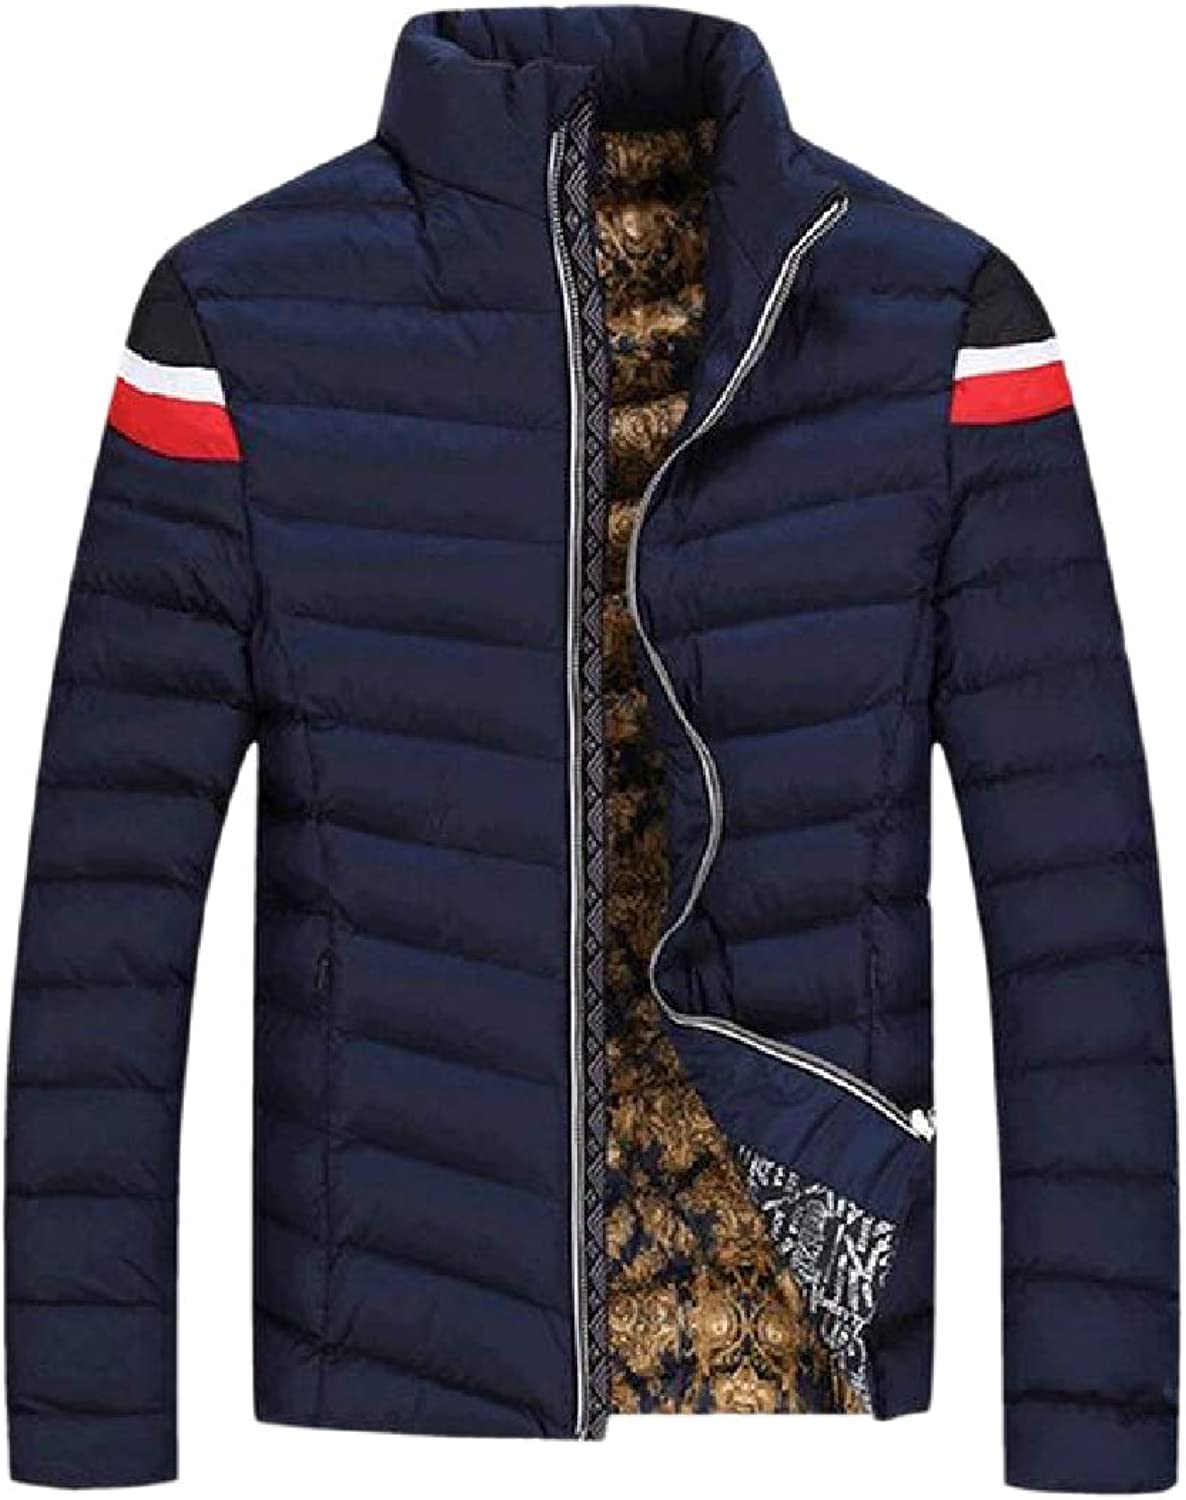 596ccd6b FieerMen Stand-up Collar Zip Up Up Up Warm Winter Stylish Slim-Fit Thick  Coat 26927b